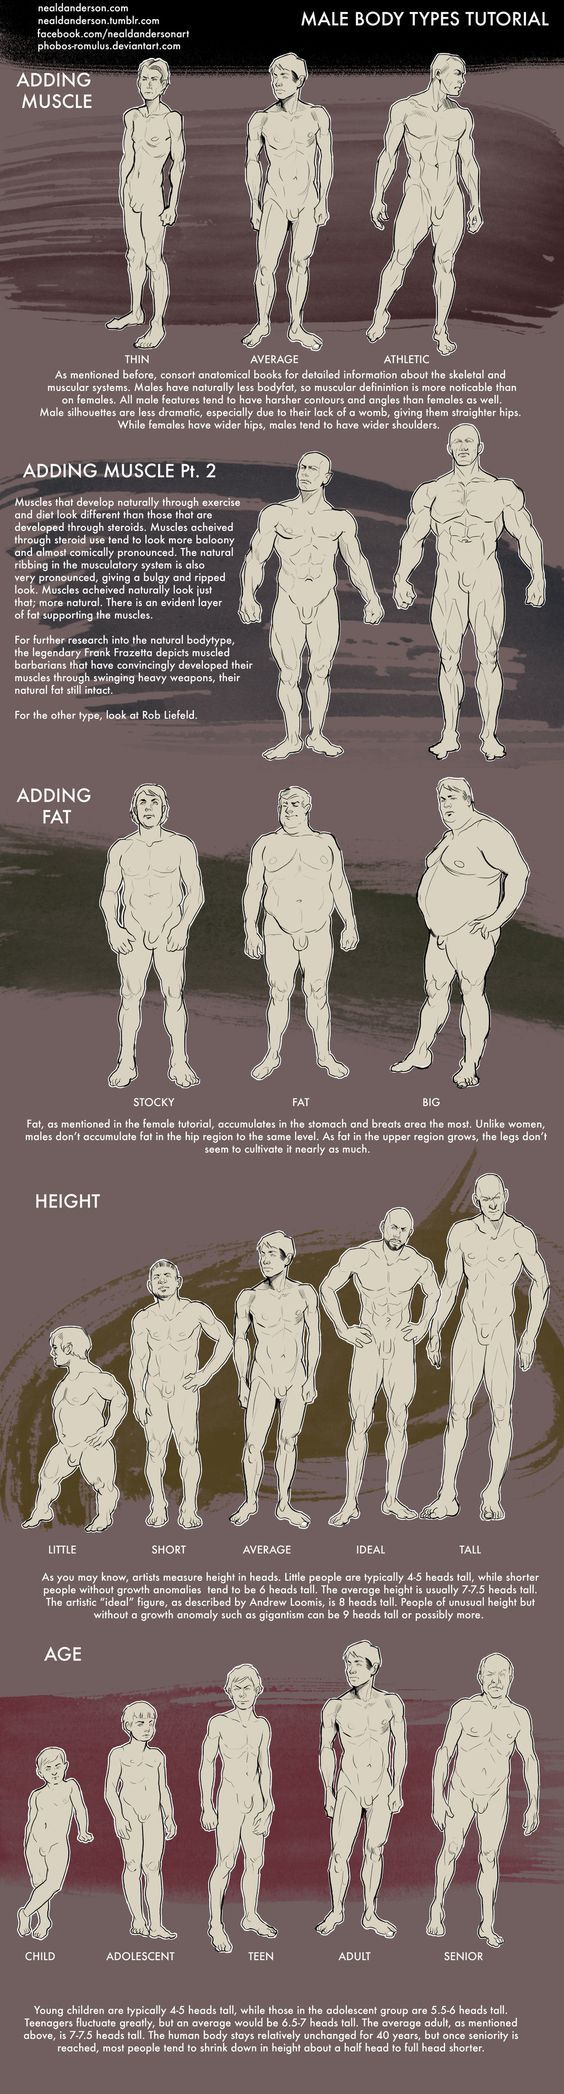 Male Body Types Tutorial by Phobos-Romulus.deviantart.com on @DeviantArt: